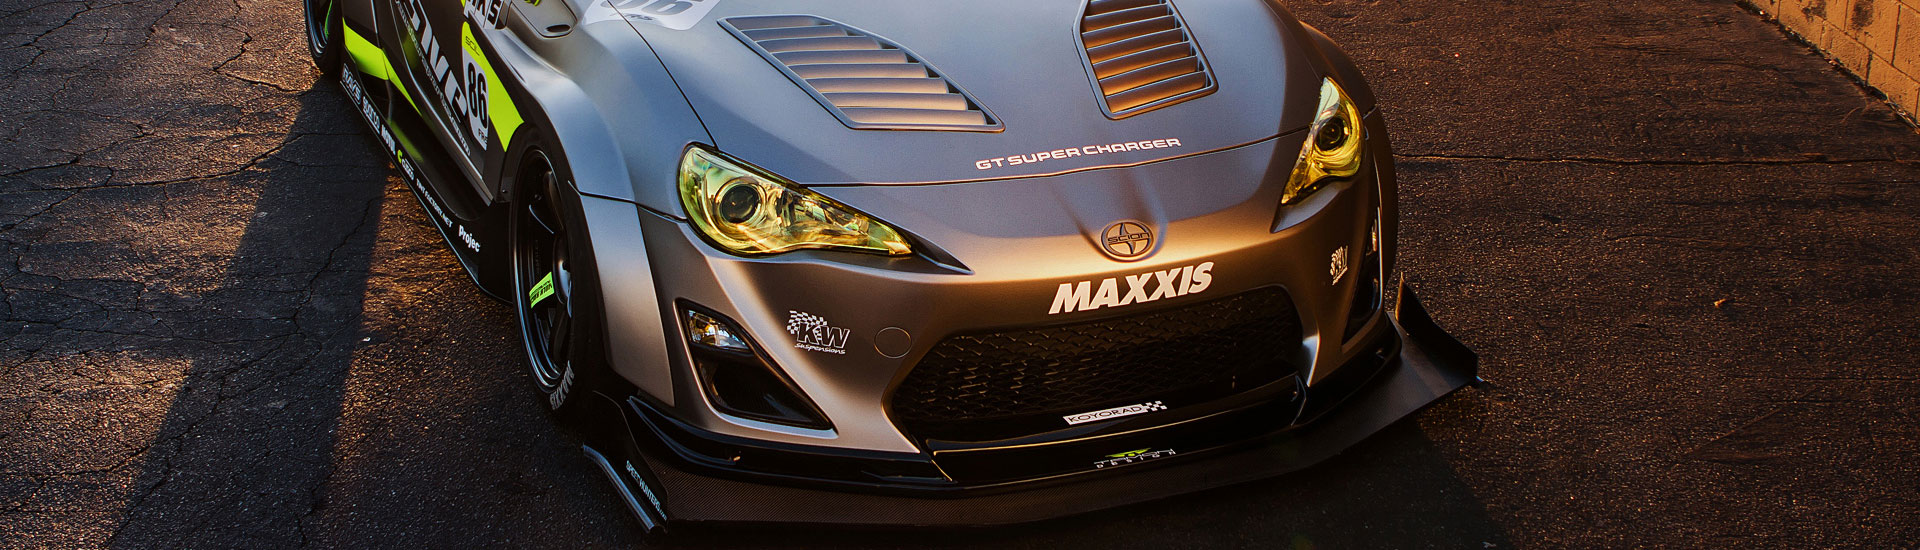 Scion Headlight Tint Covers